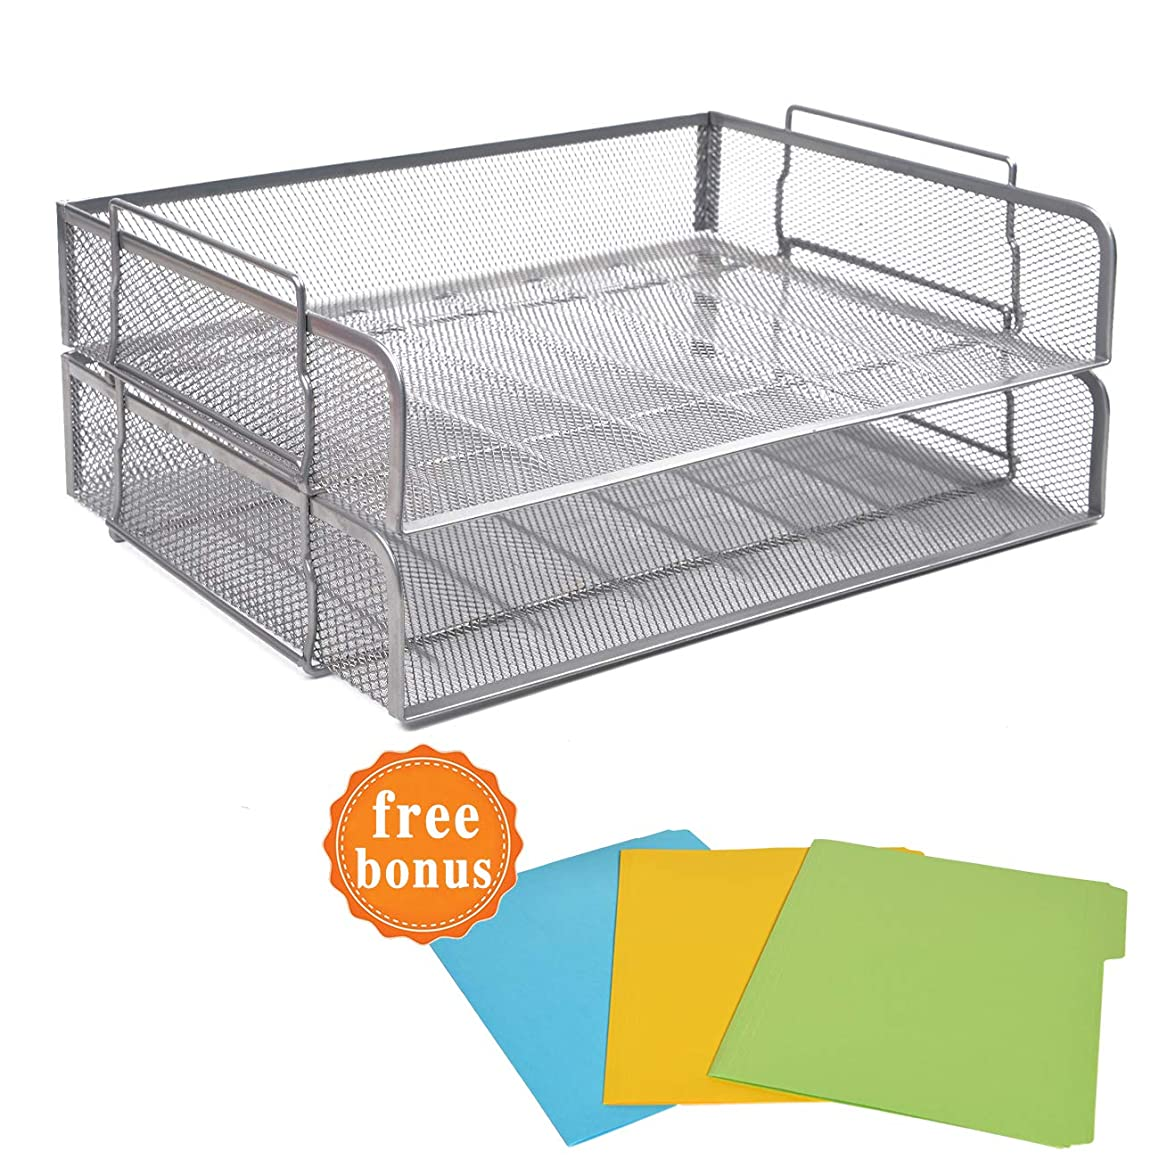 2 Tier Paper Letter Tray Desk Organizer with Bottom Support Frame Stackable Desktop File Document Organizer Metal Mesh Collection Office Desk Accessories with 3Pcs File Folders,Horizontal Silver